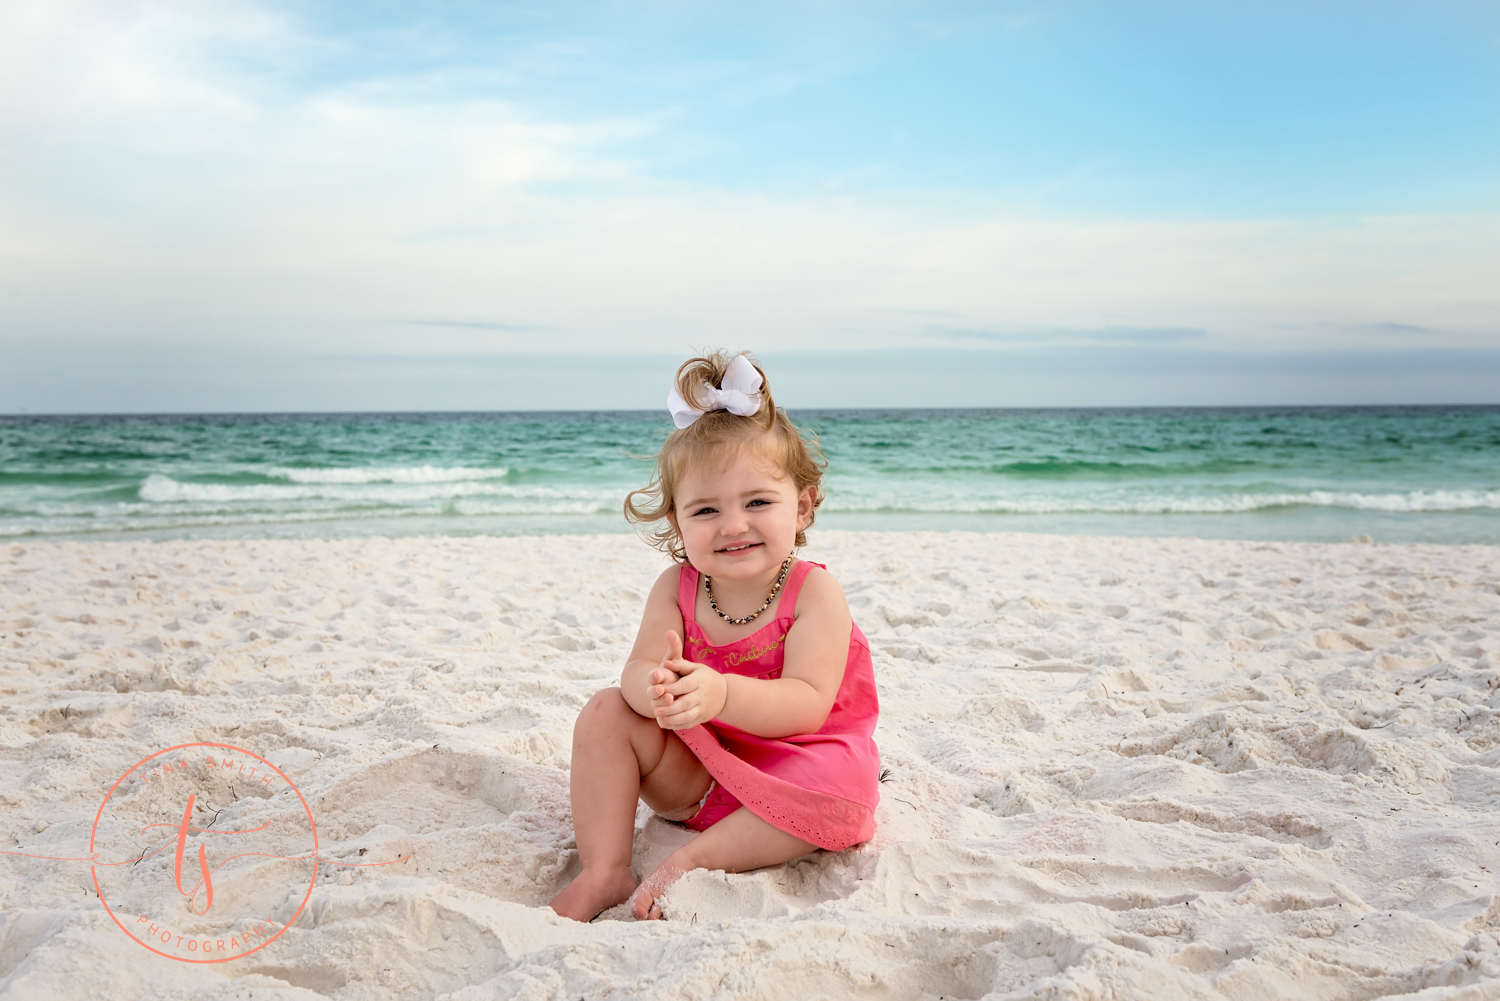 baby girl sitting in beach sand smiling for camera